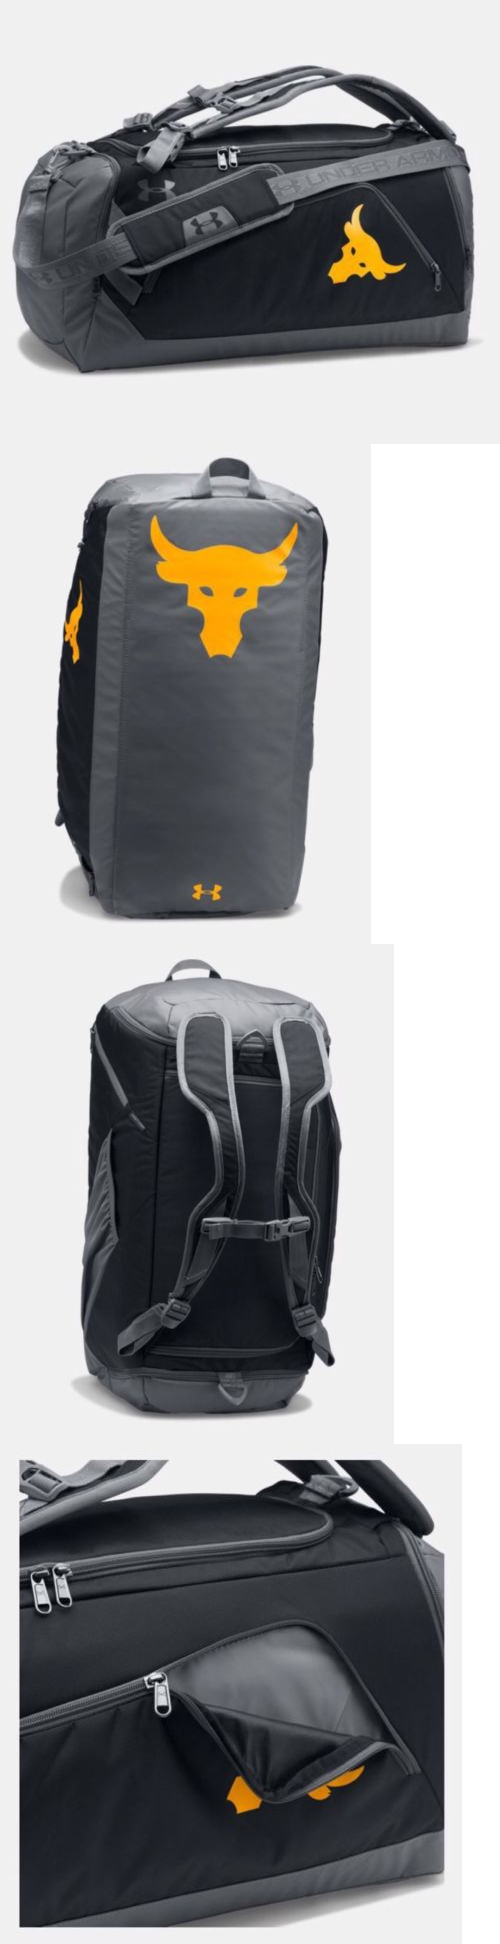 76b6dd9363 Bags and Backpacks 163537  Ua X Project Rock Under Armour Exclusive Contain  Duffel-Bag Nwt -  BUY IT NOW ONLY   150 on eBay!